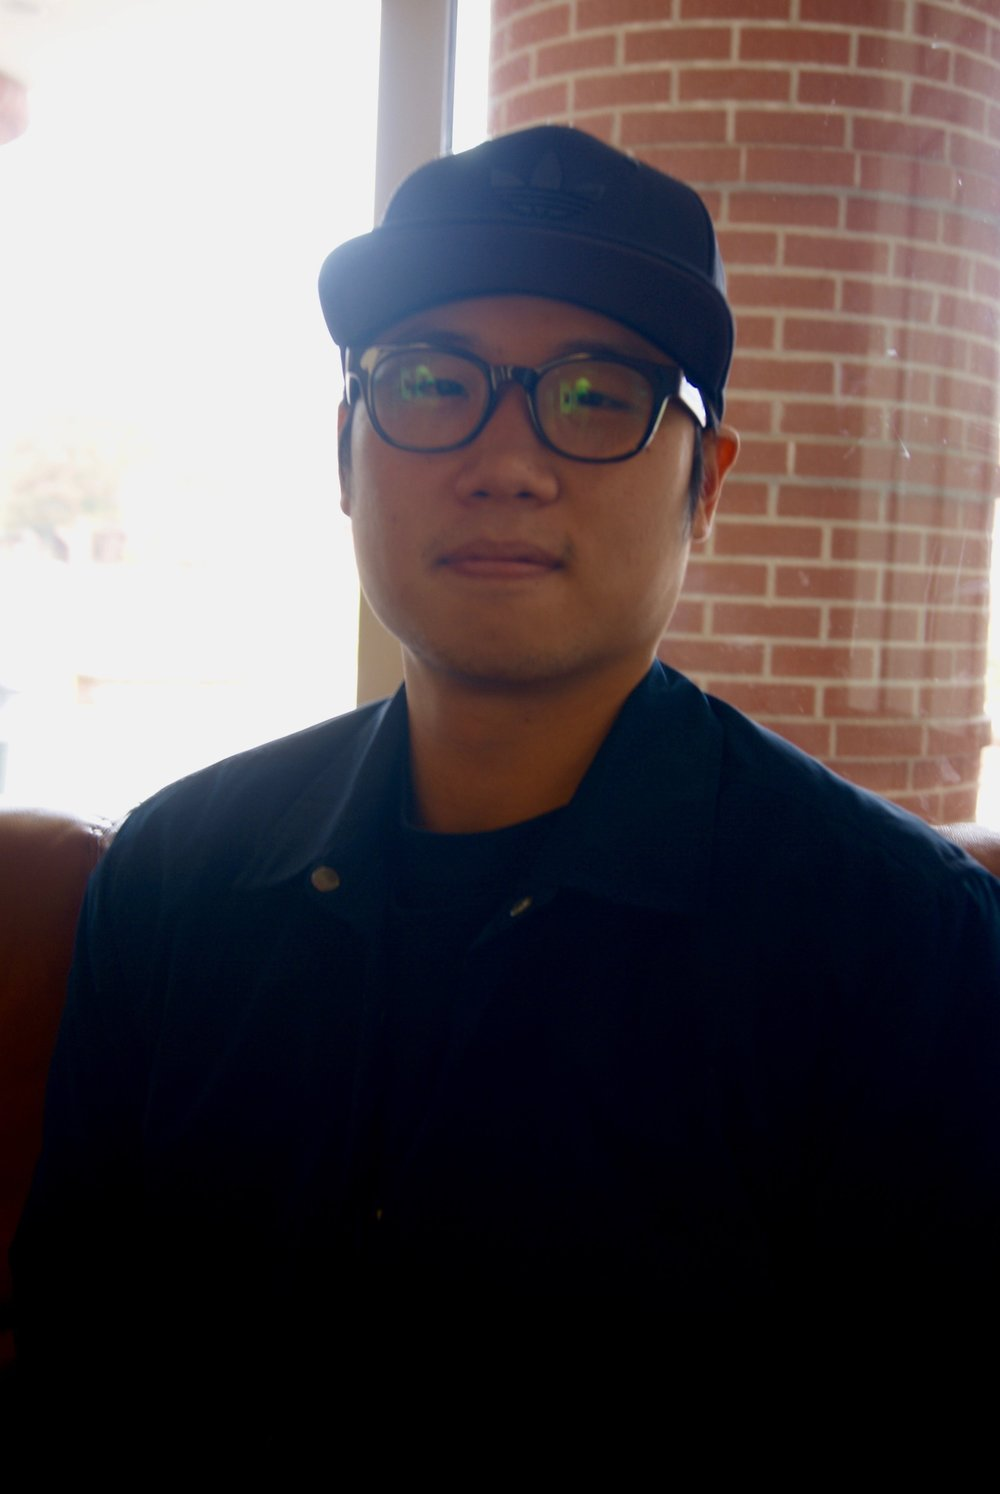 Hyun talks about his obstacles at Quinnipiac in the multicultural suite on campus.